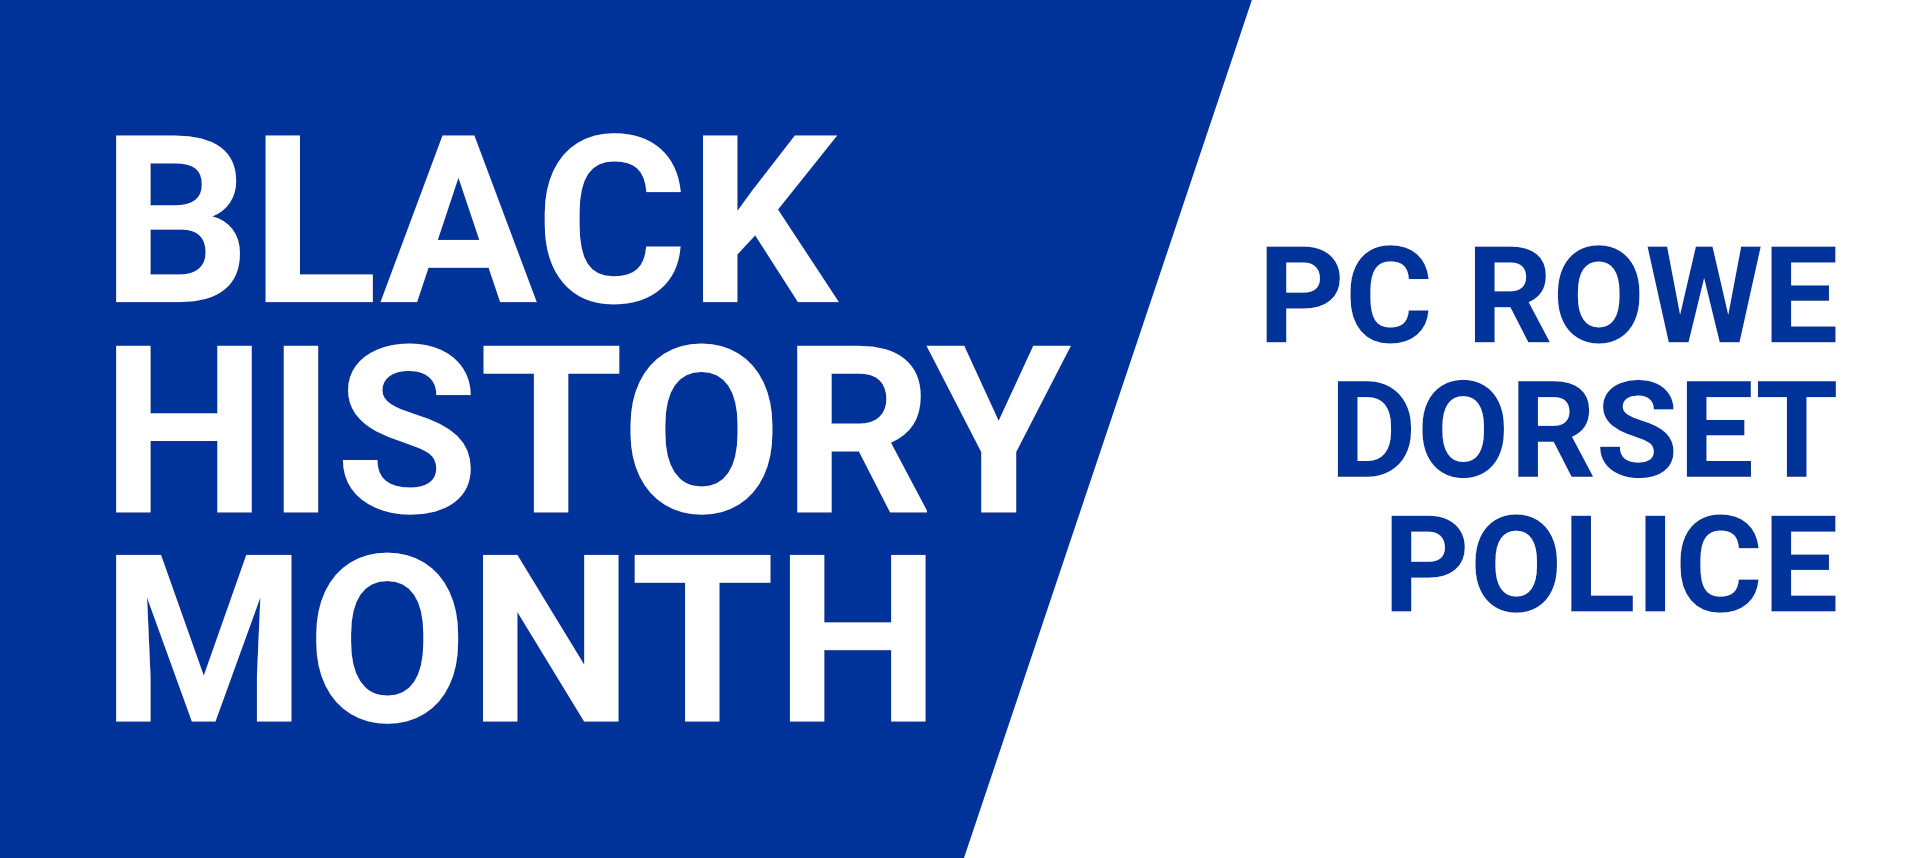 PC Rowe Black History Month